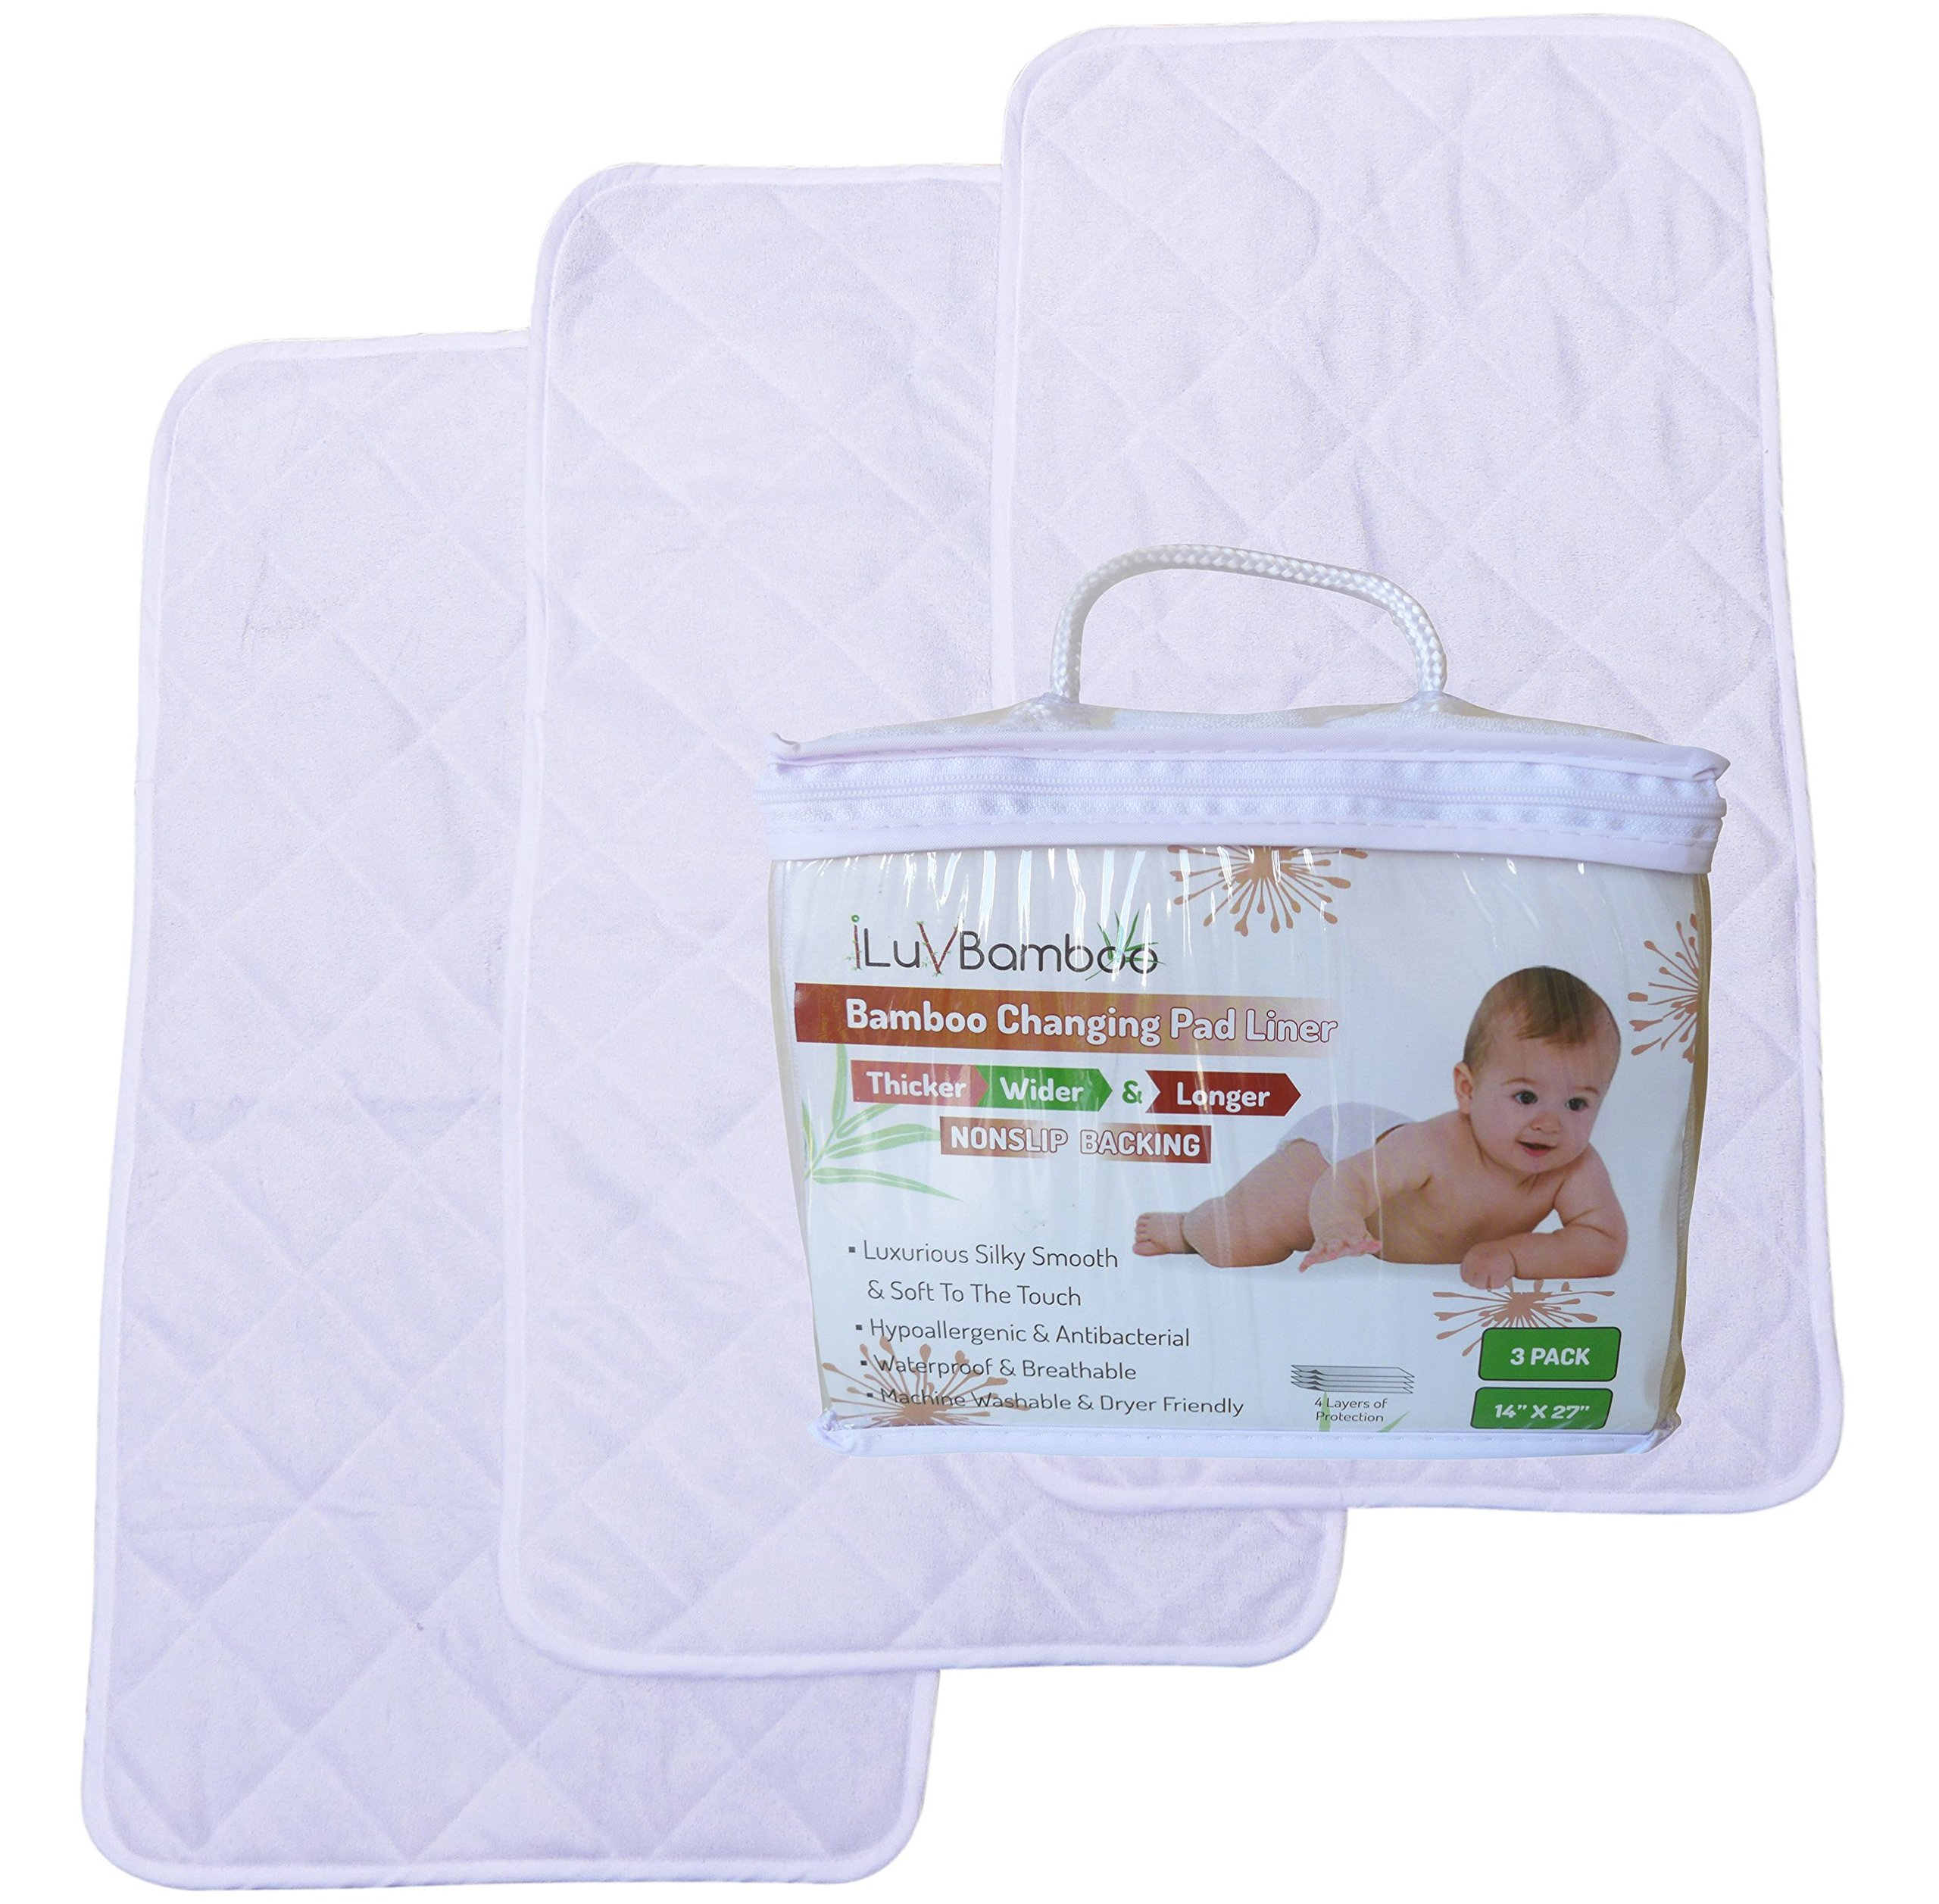 "iLuvBamboo New Best Grip – Thicker, Wider and Longer 14"" x 27"" Waterproof Changing Pad Liners 3 Pack – Mat to Cover your Changing Table Mattress Pad for Diaper Change & Baby Gifts"